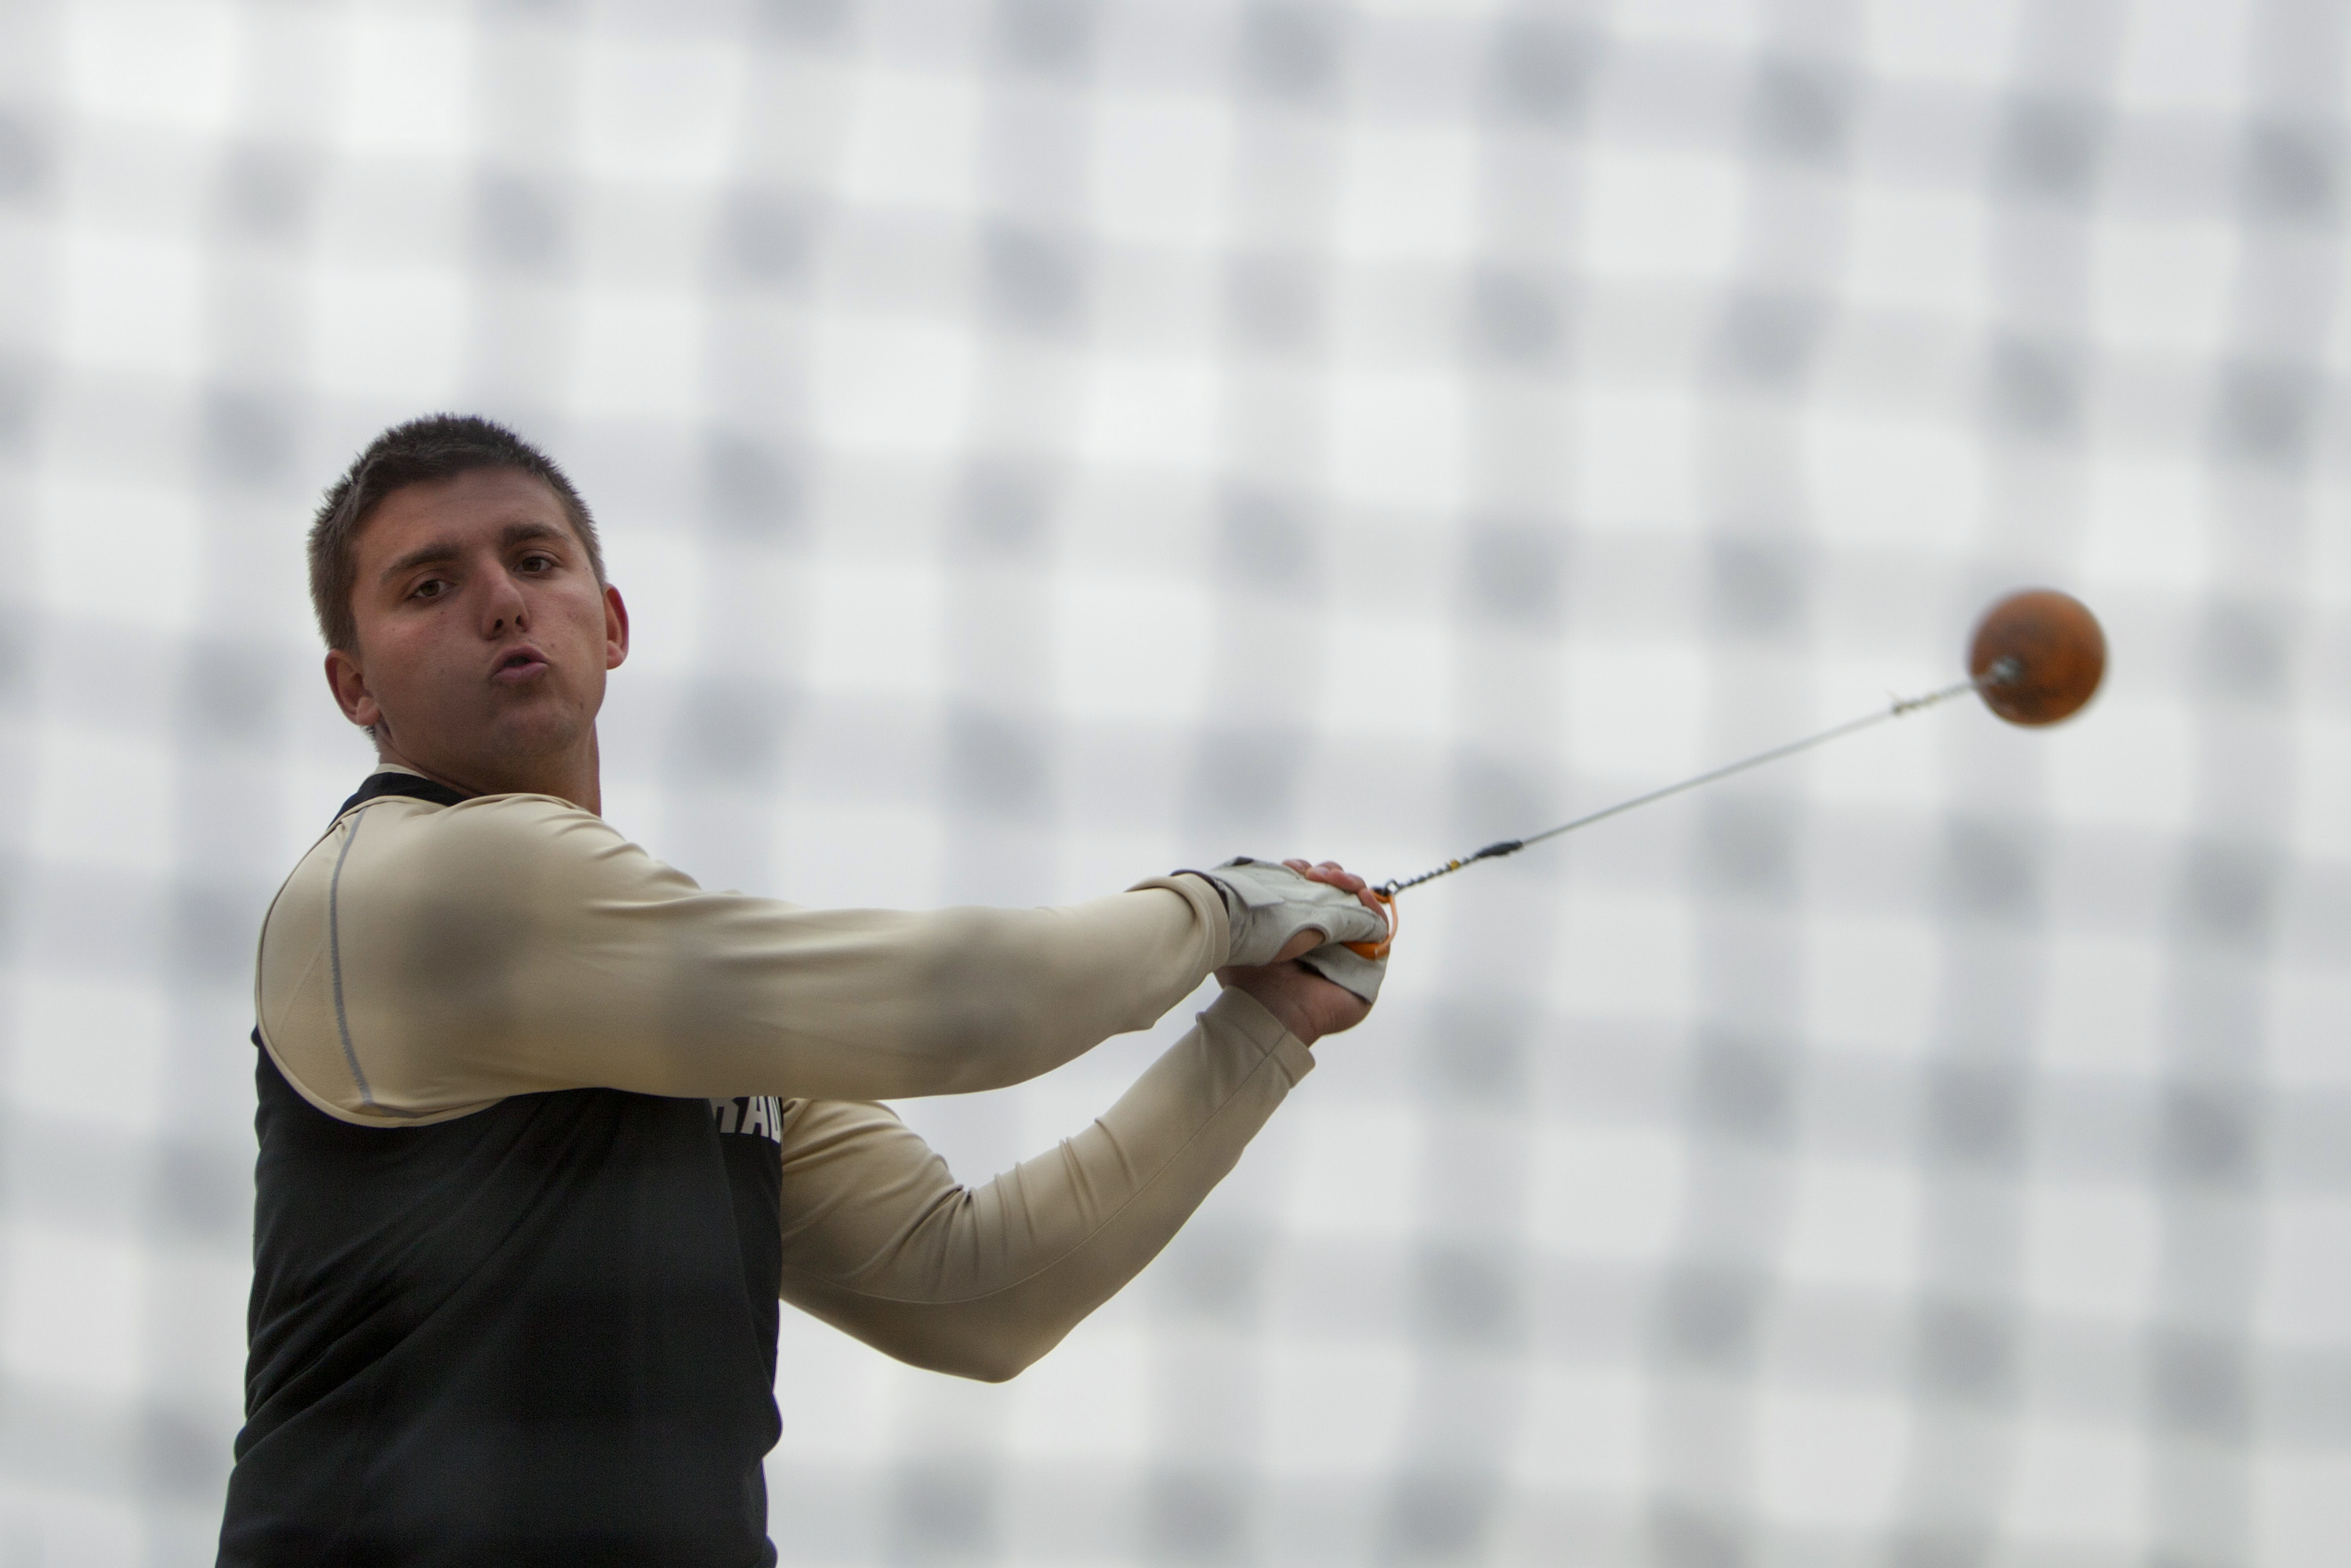 Sophomore thrower Alexandre Kizirian swings the hammer on Friday at the CU Invitational at Potts Field. Kizirian came in second with a throw of 57.04 meters. (CU Independent/Robert R. Denton)